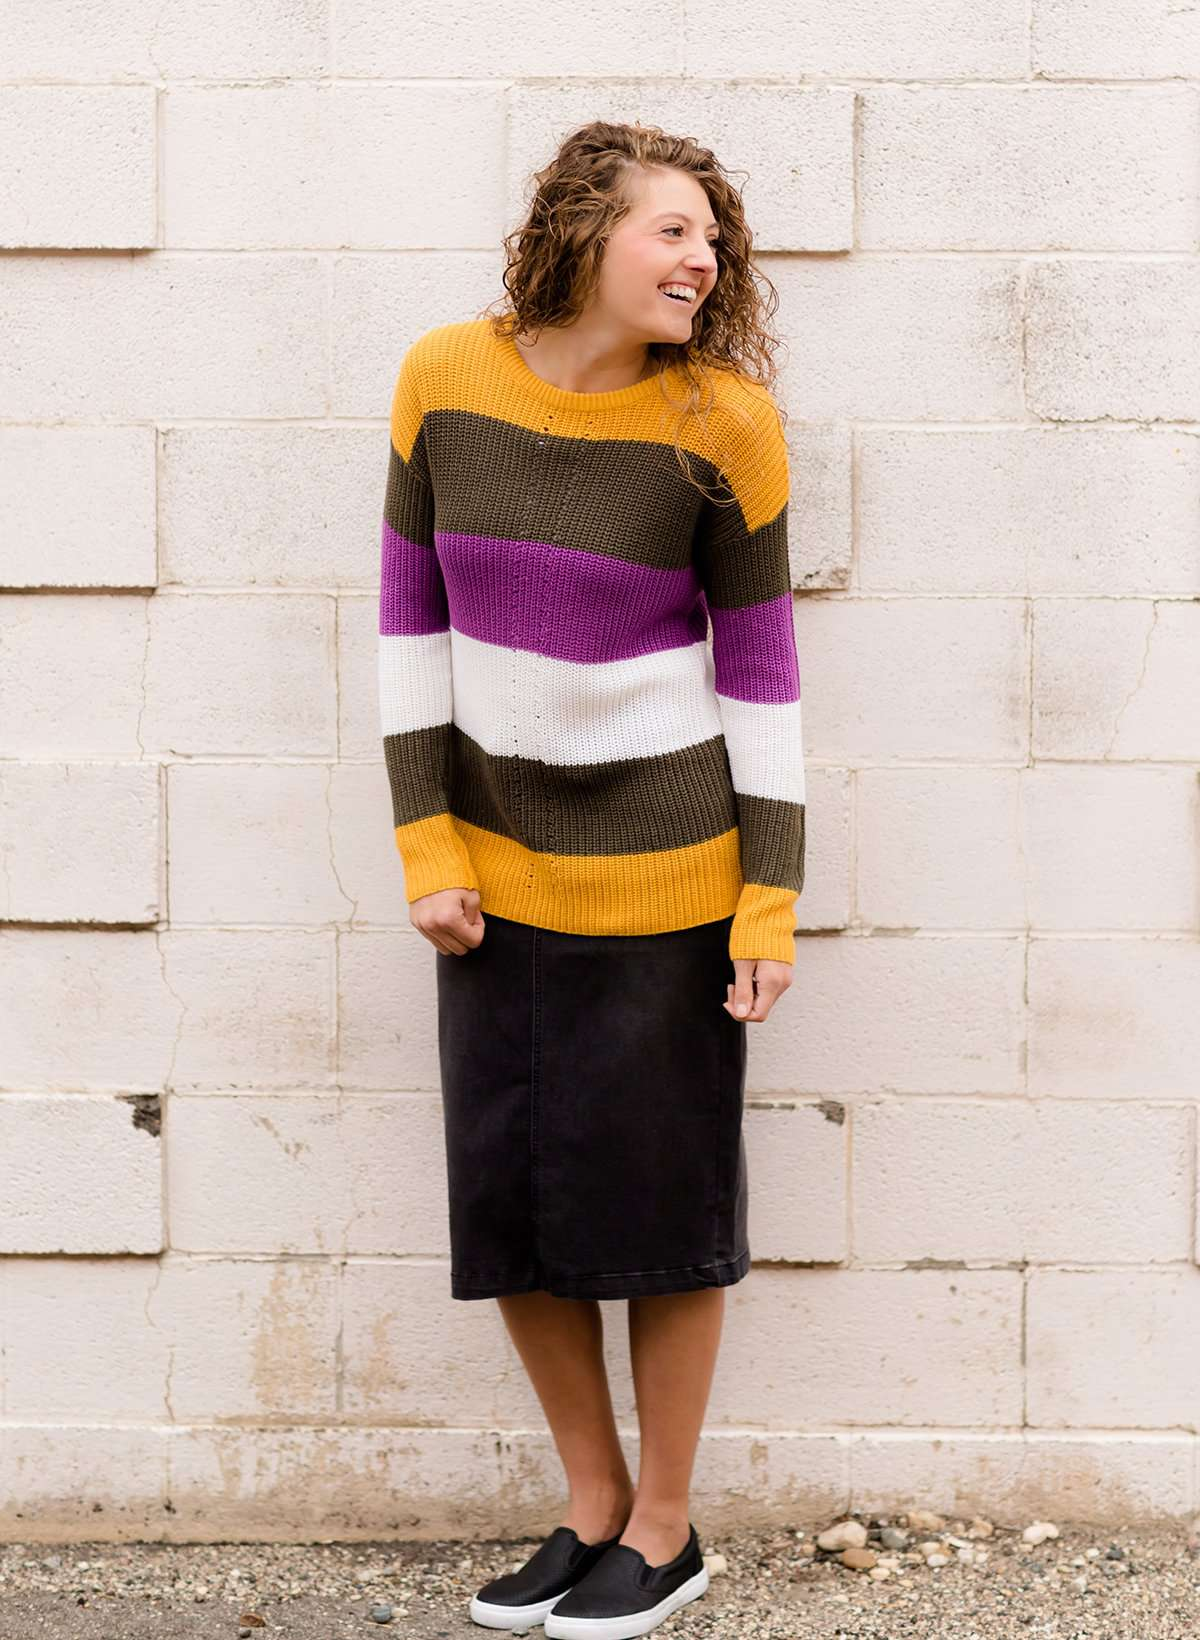 Women's Modest Boat-neck Sweater in Mustard, Olive and Purple stripe